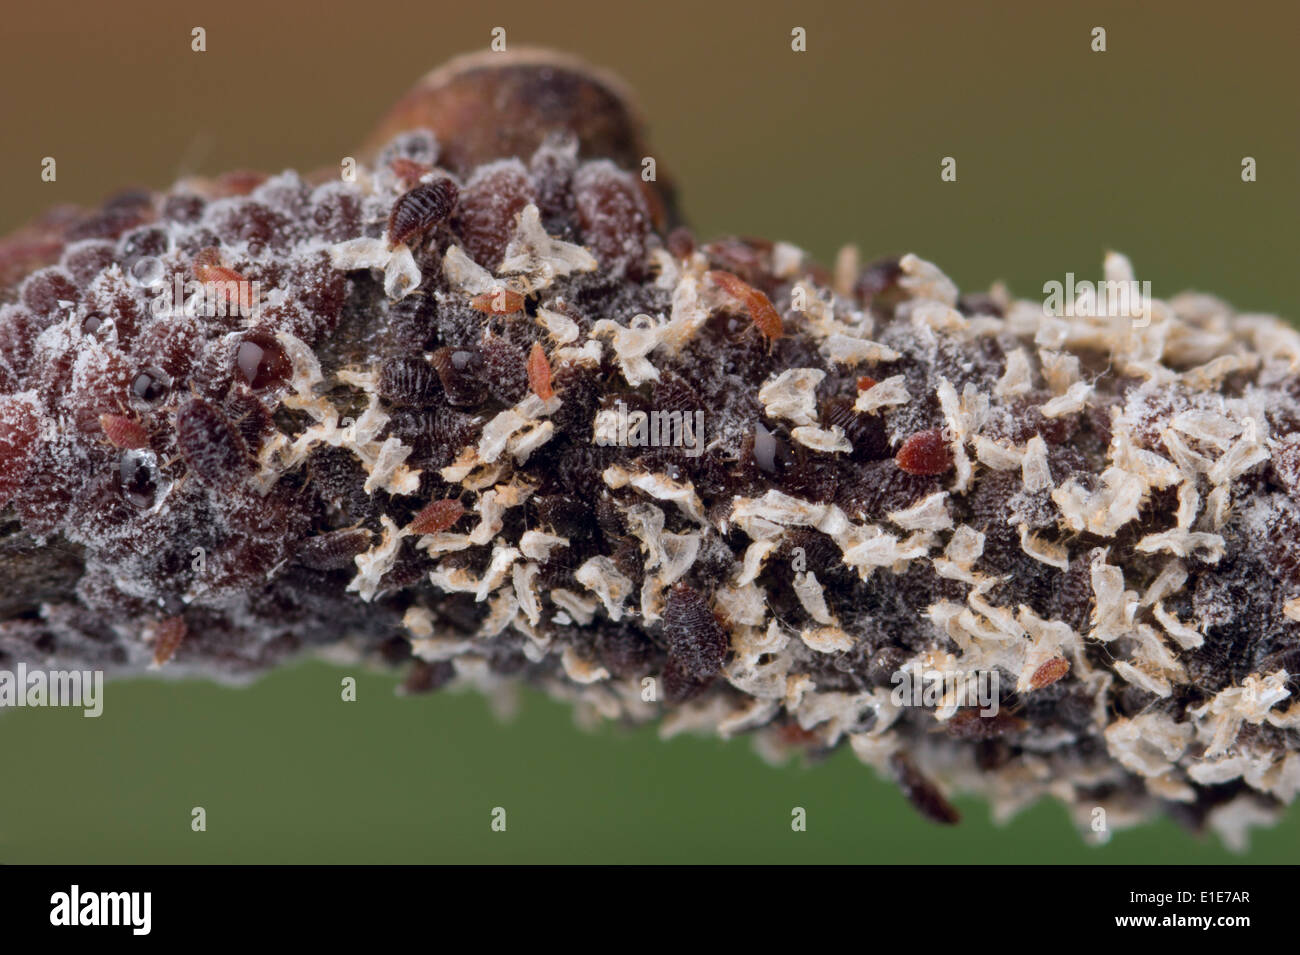 Immature Australian gumtree scale insects - Stock Image